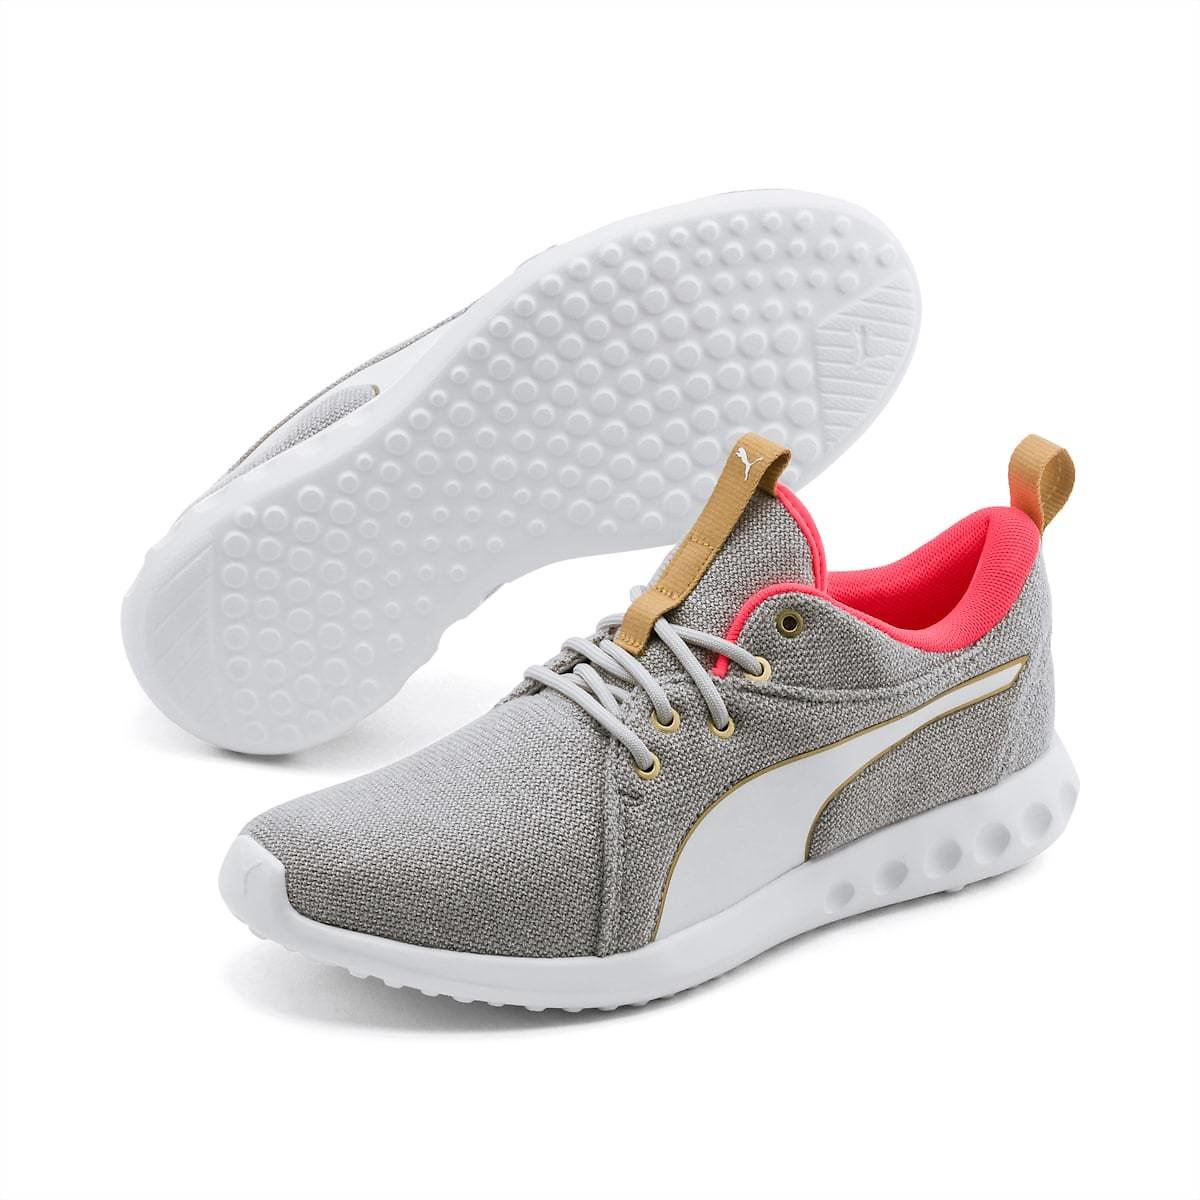 Women's Carson 2 Knit Running Shoes (2 Colors)